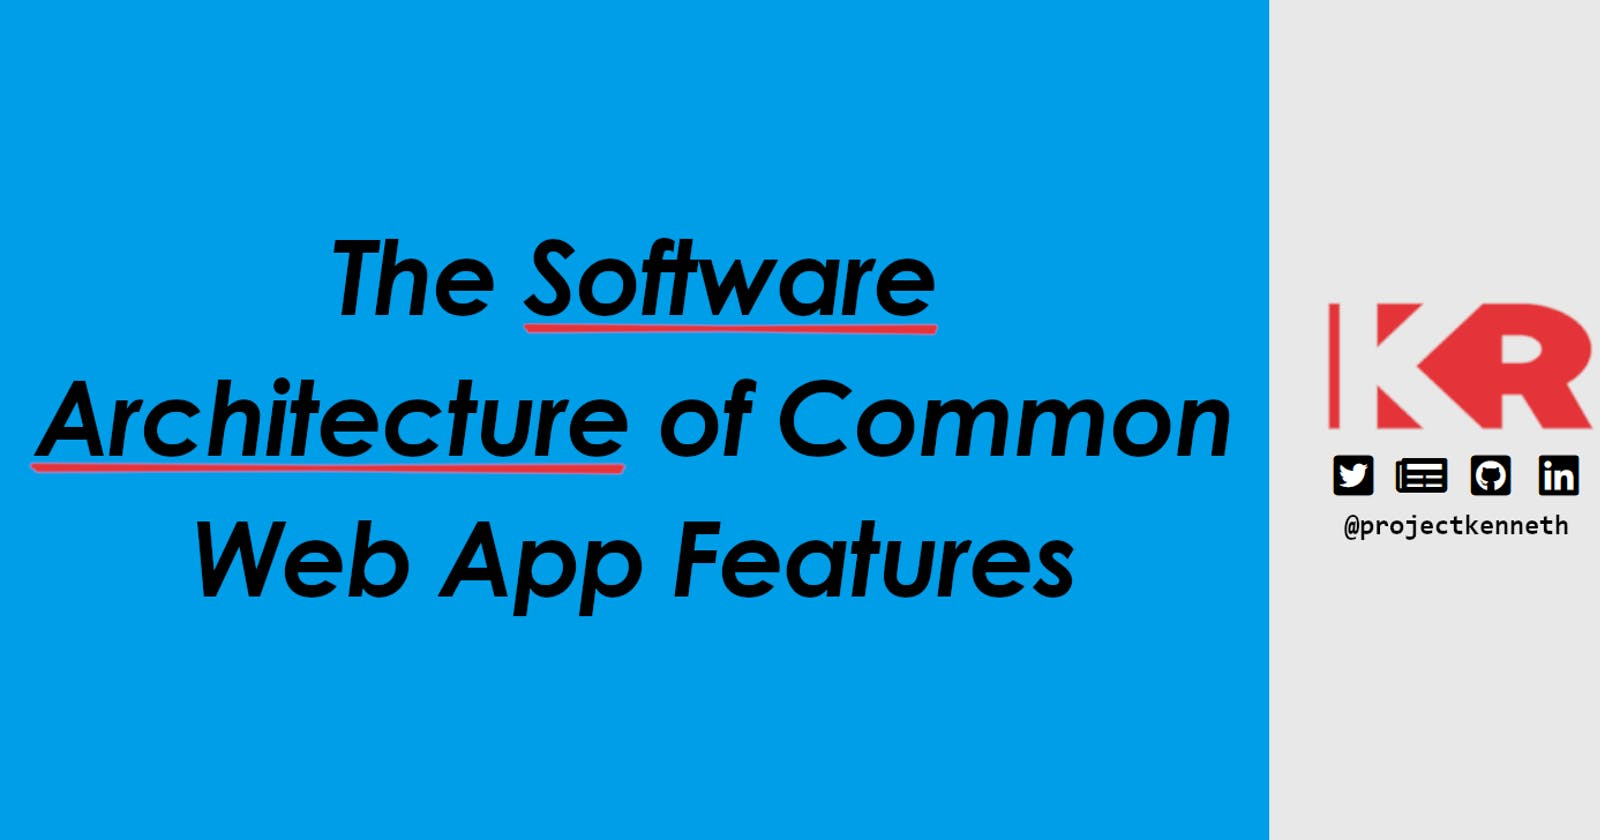 A Quick Look: The Software Architecture of Common Web App Features